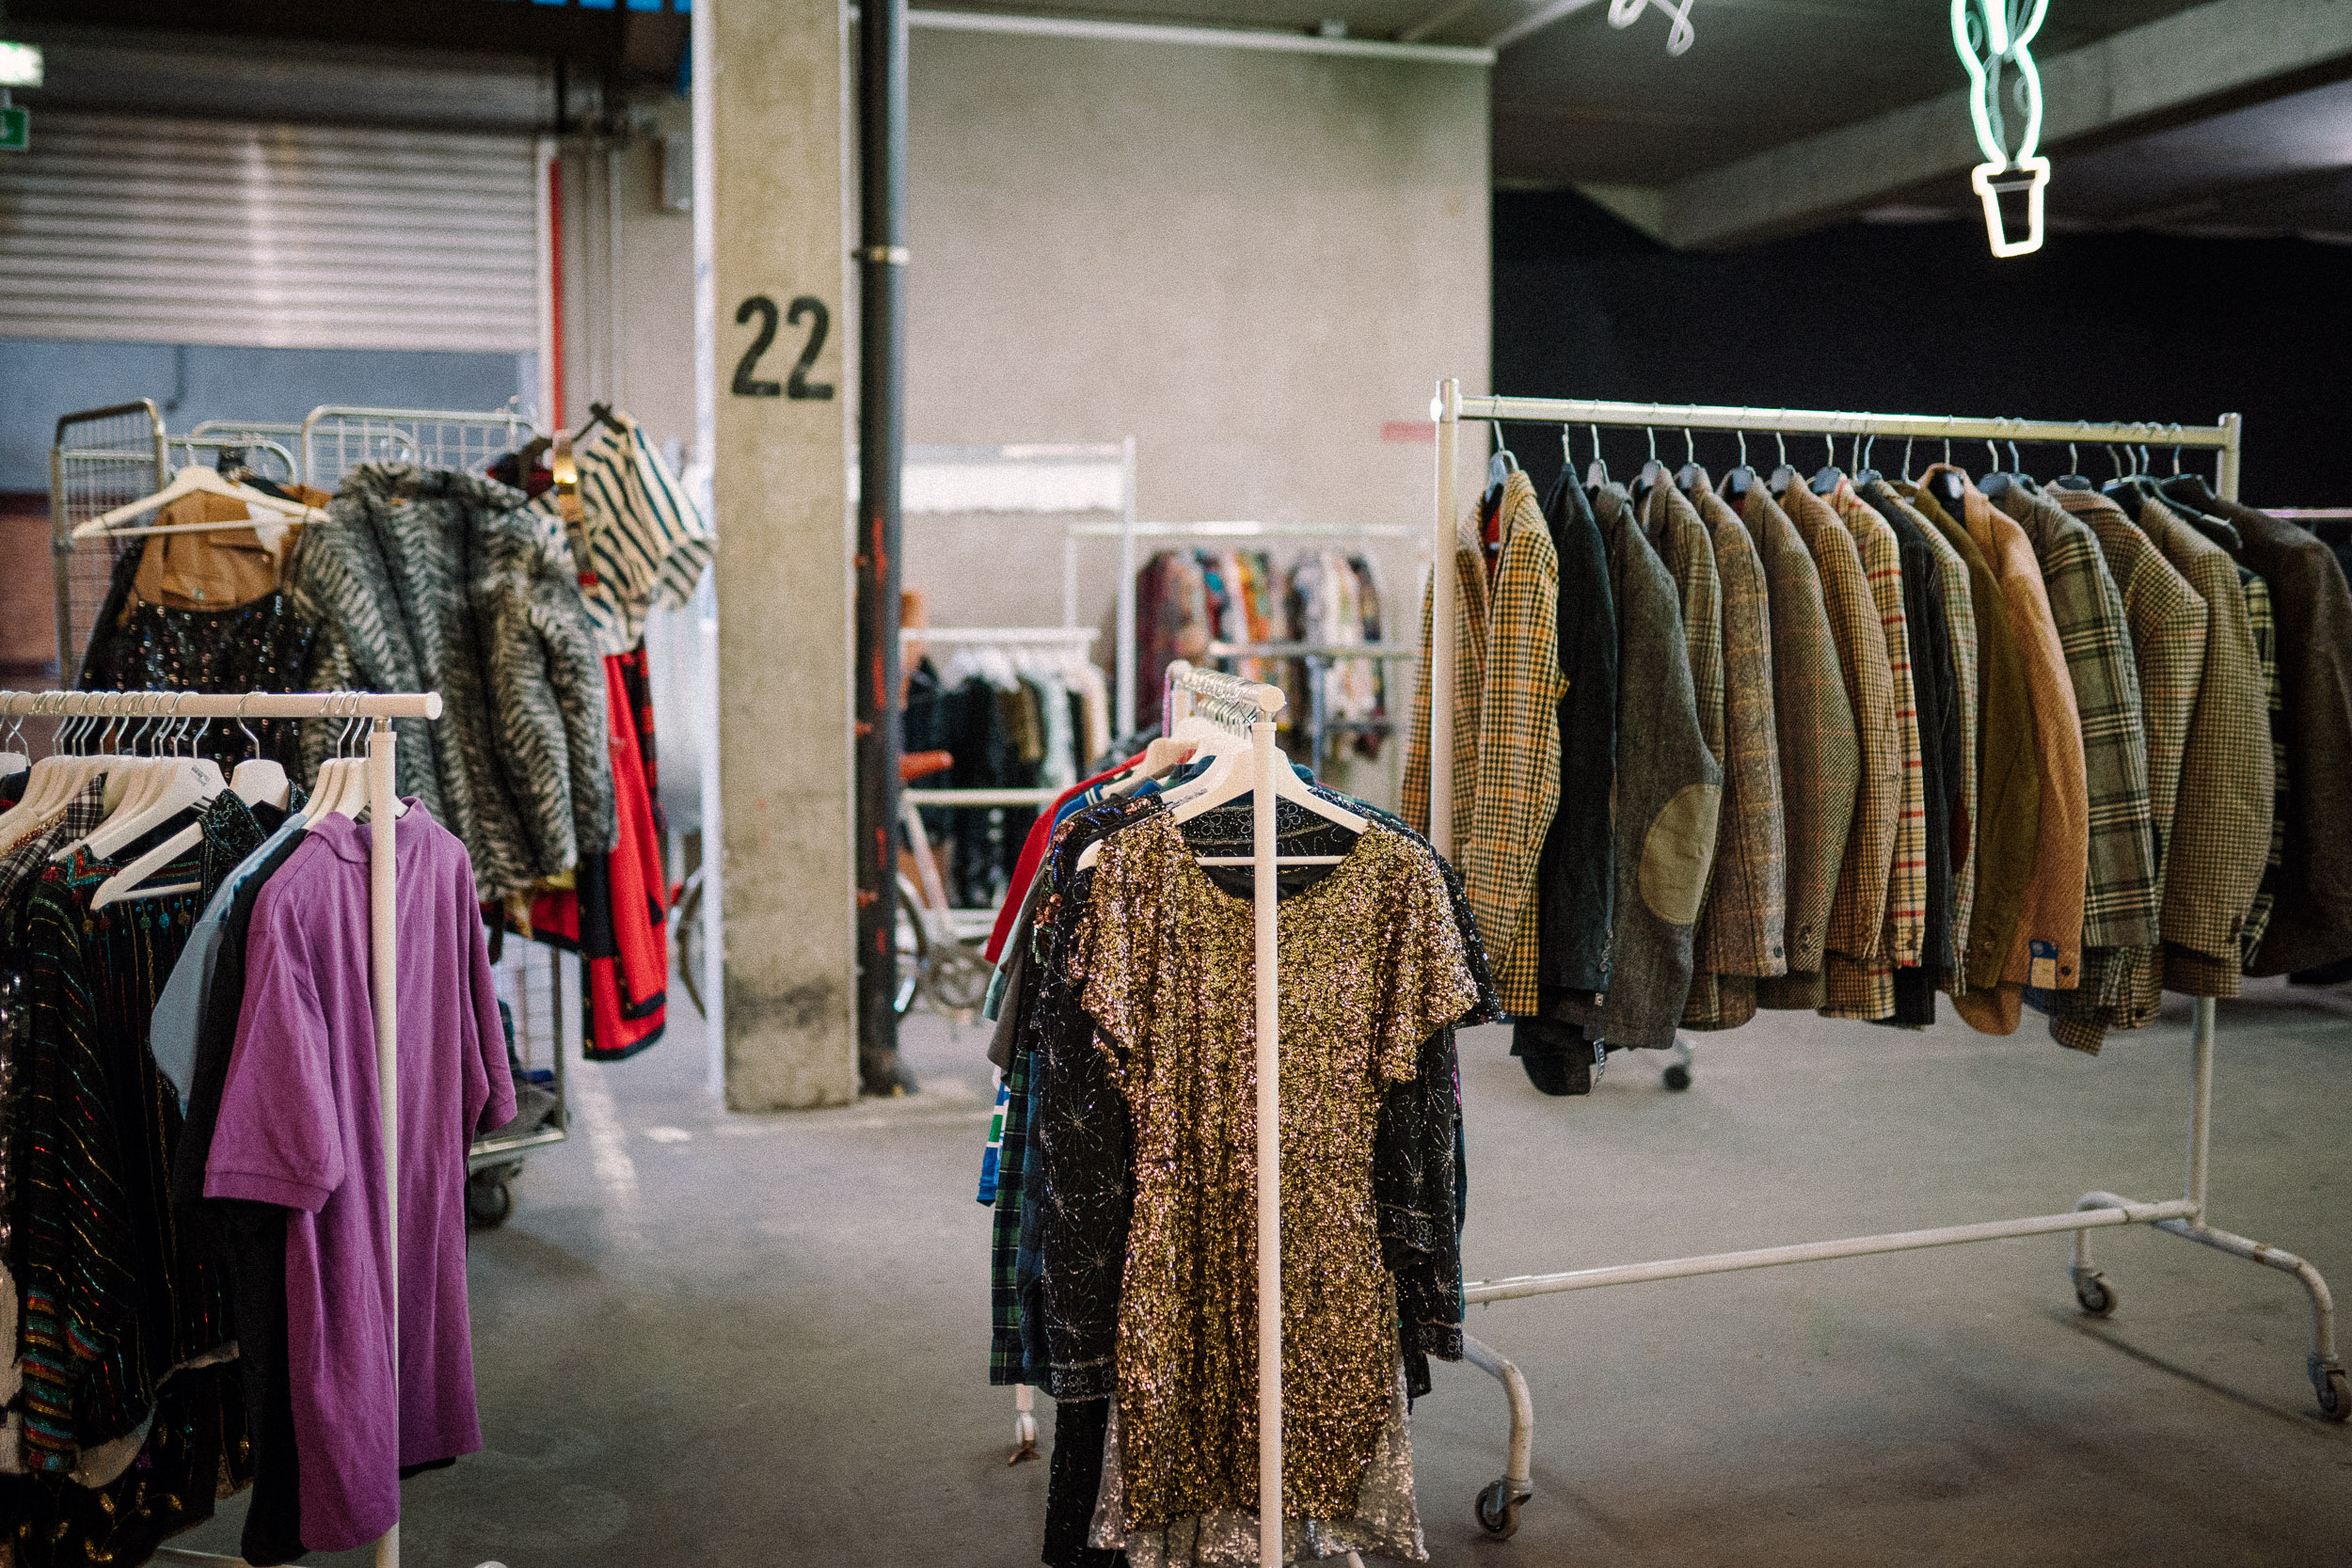 BeThrifty Vintage Kilo Sale am 1. February 2020 @ Altes Hallenbad, Feldkirch.